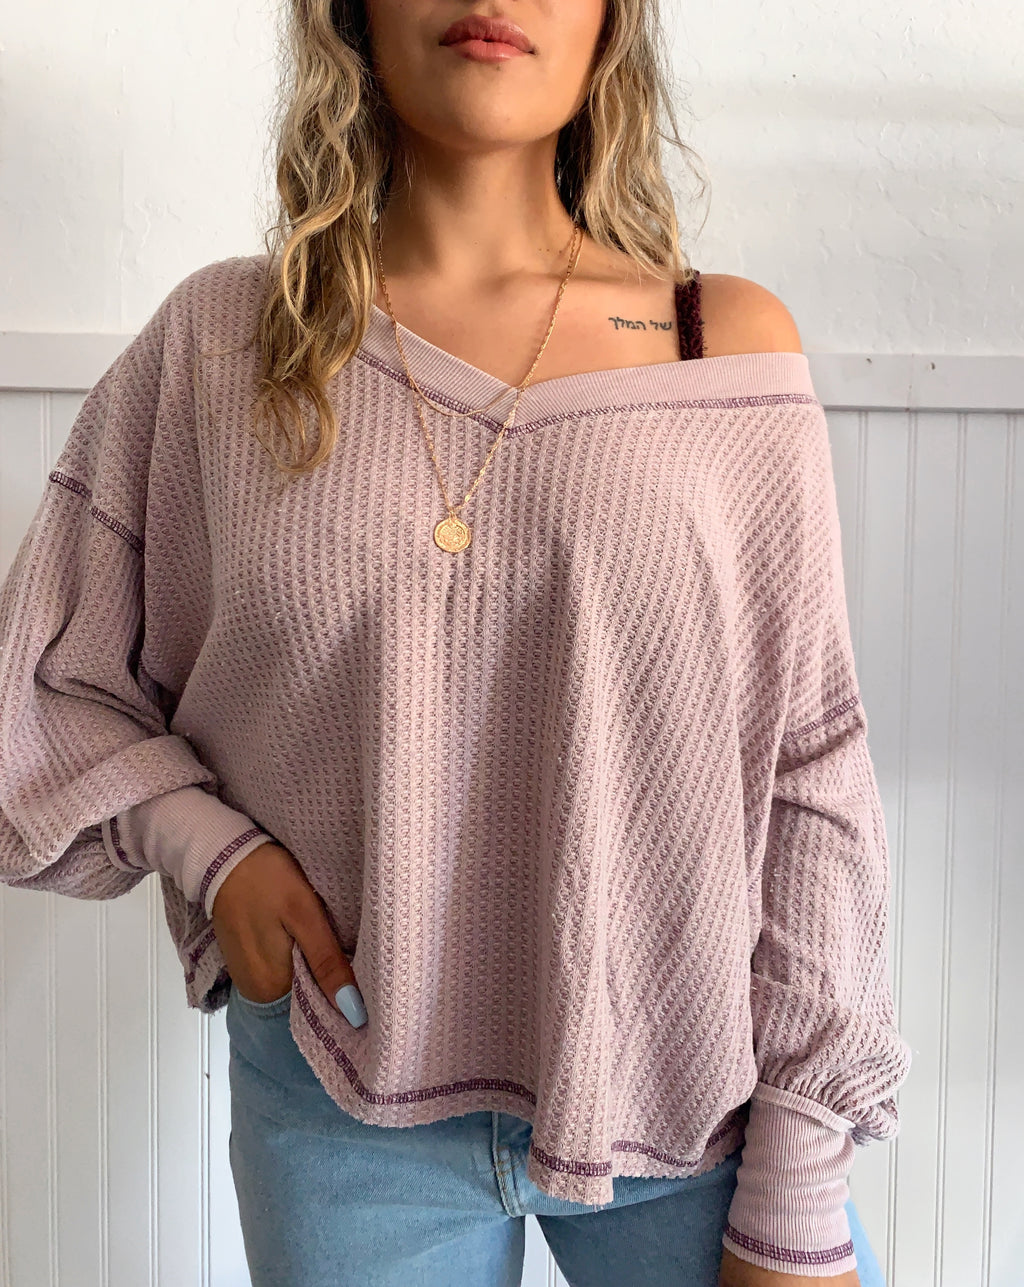 Whitney Knit Top (Lavender)